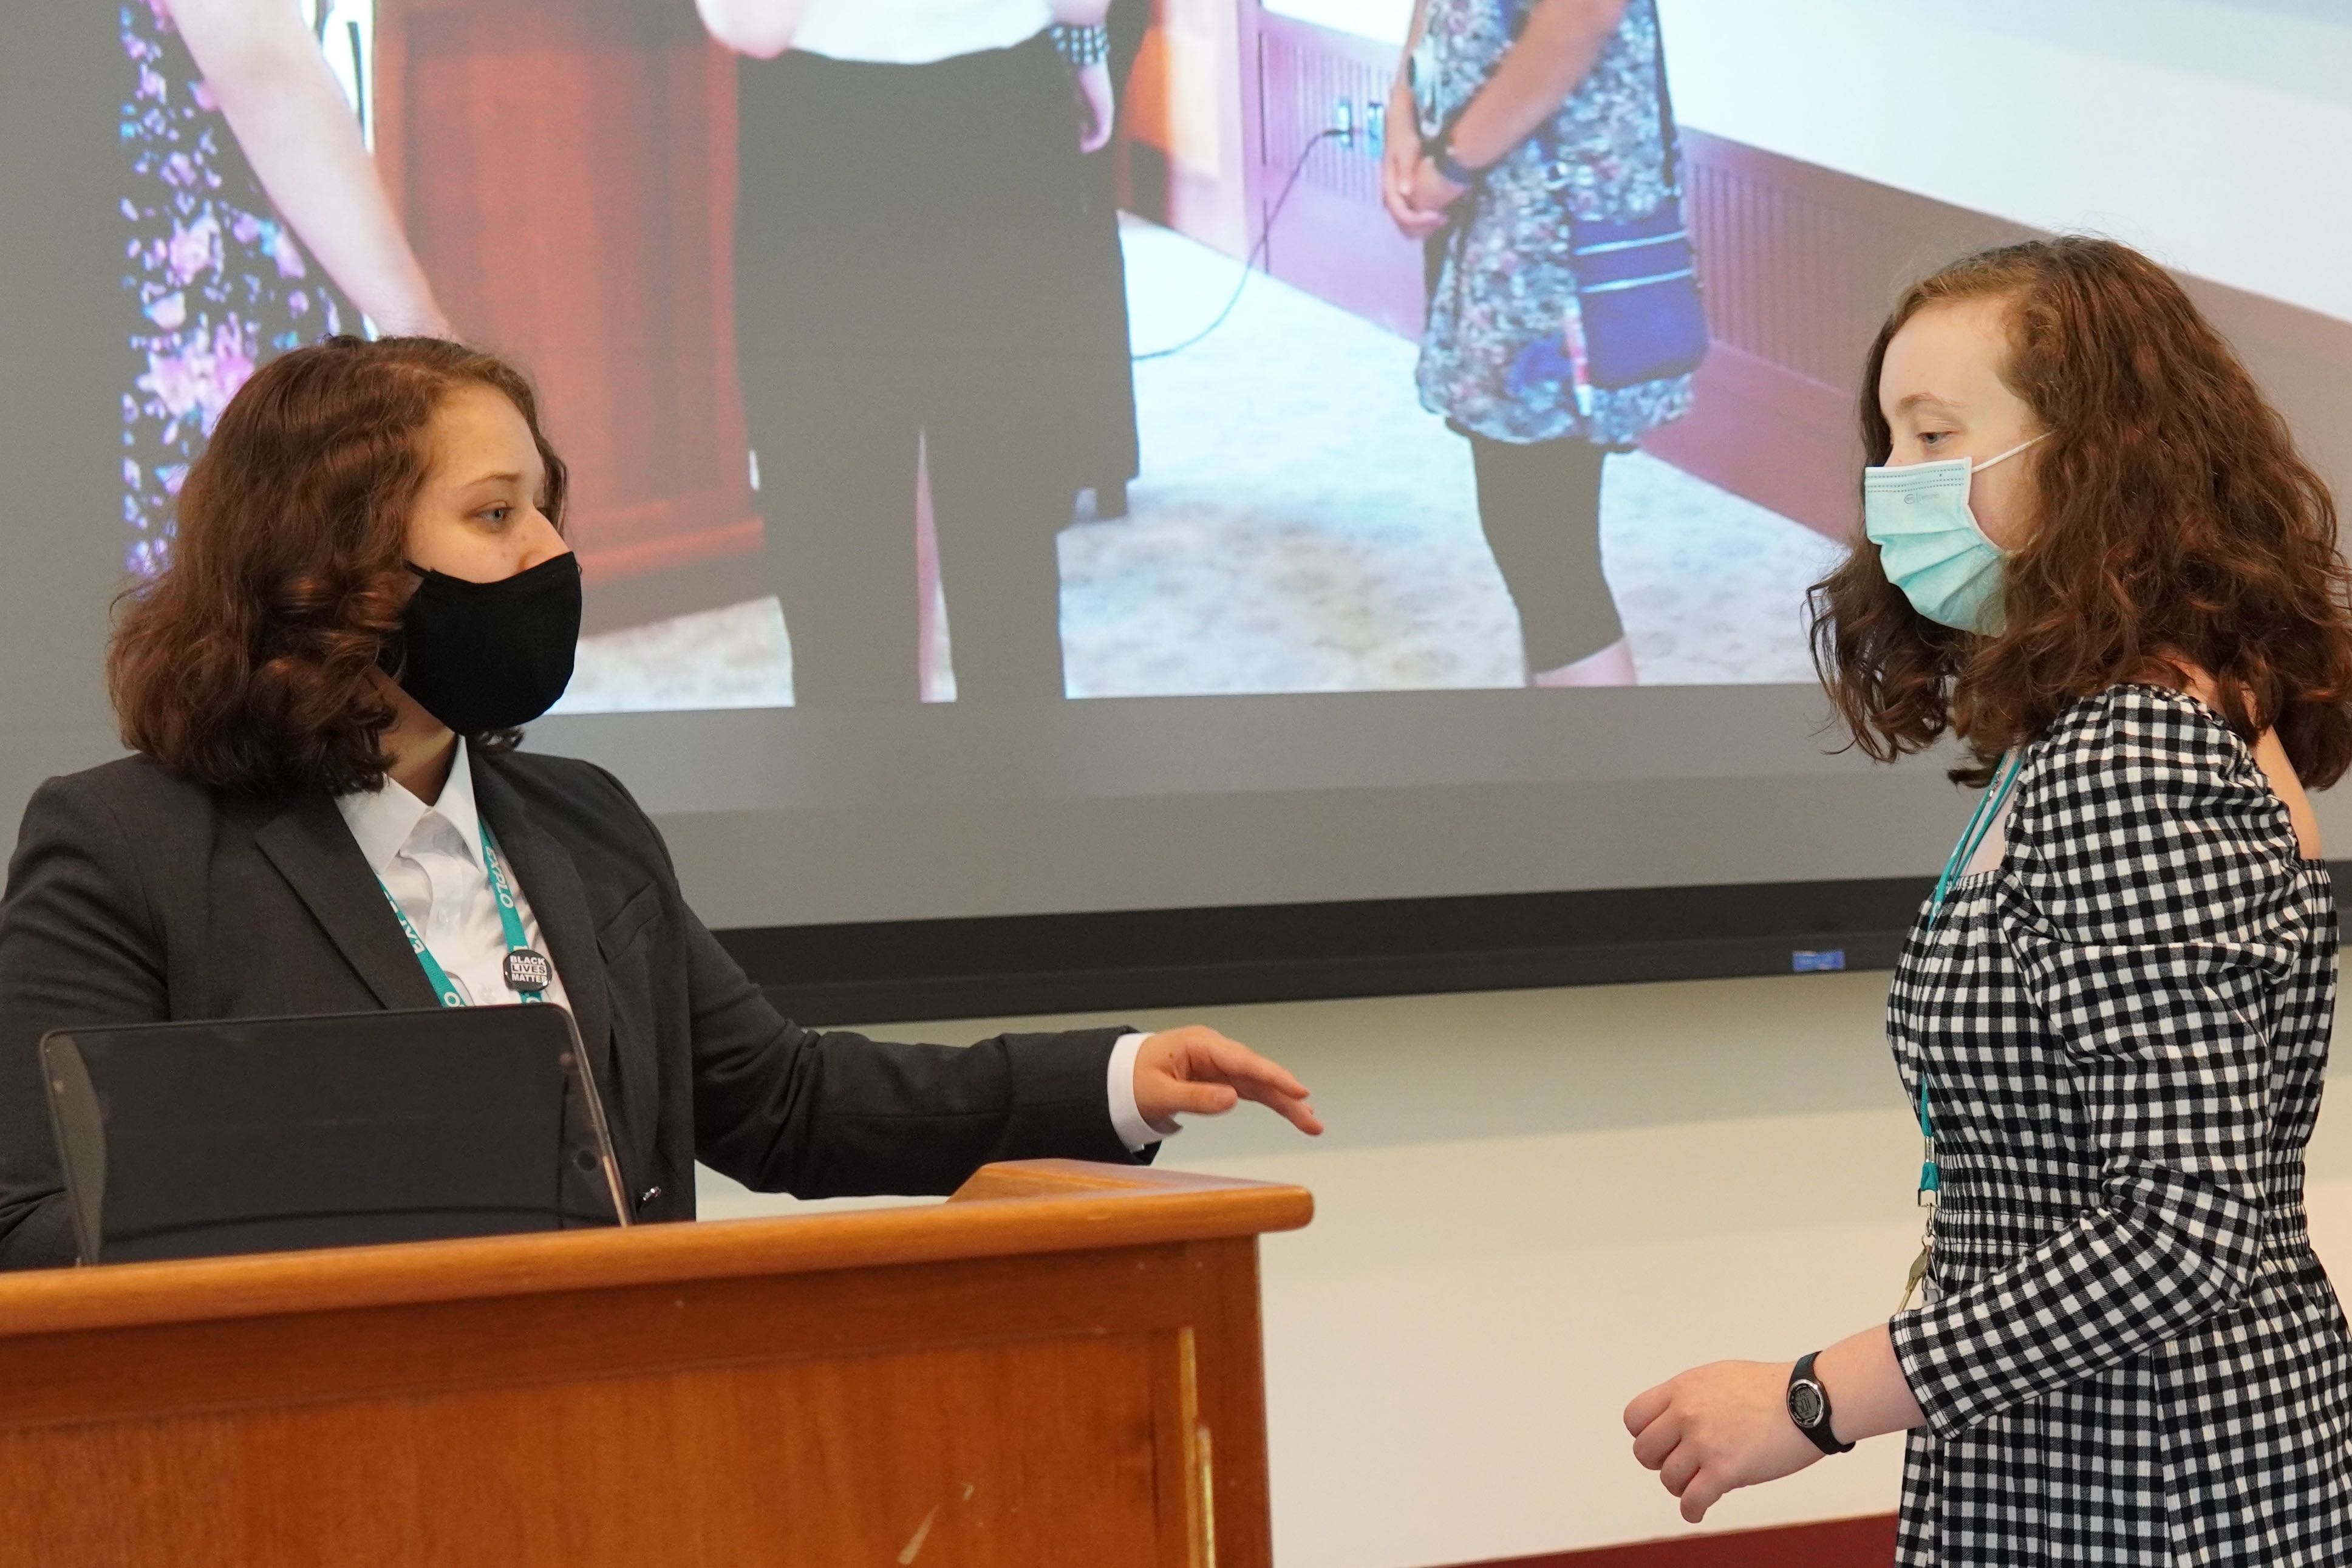 Two students practice their presentation before others arrive to see themselves projected on the screen.